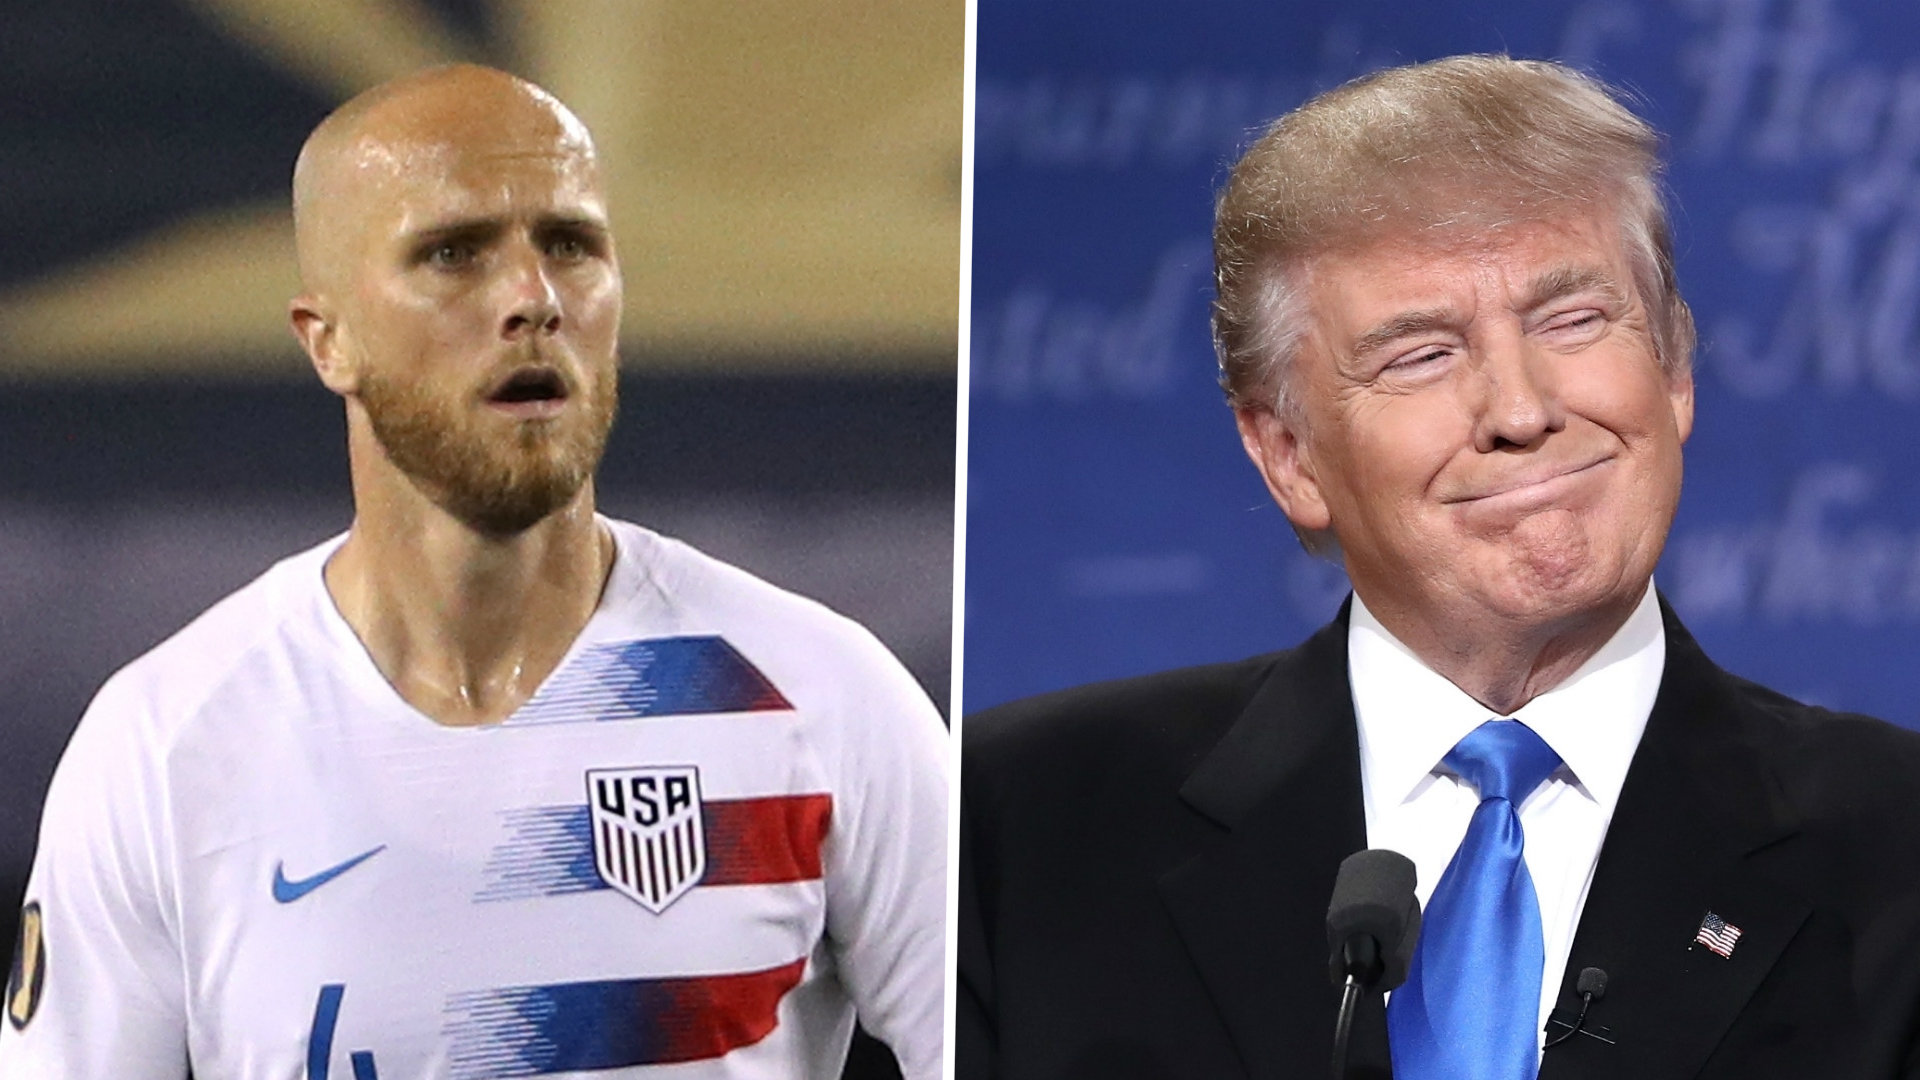 Michael Bradley on 'empty' Donald Trump: 'There isn't a moral bone in his body' 1